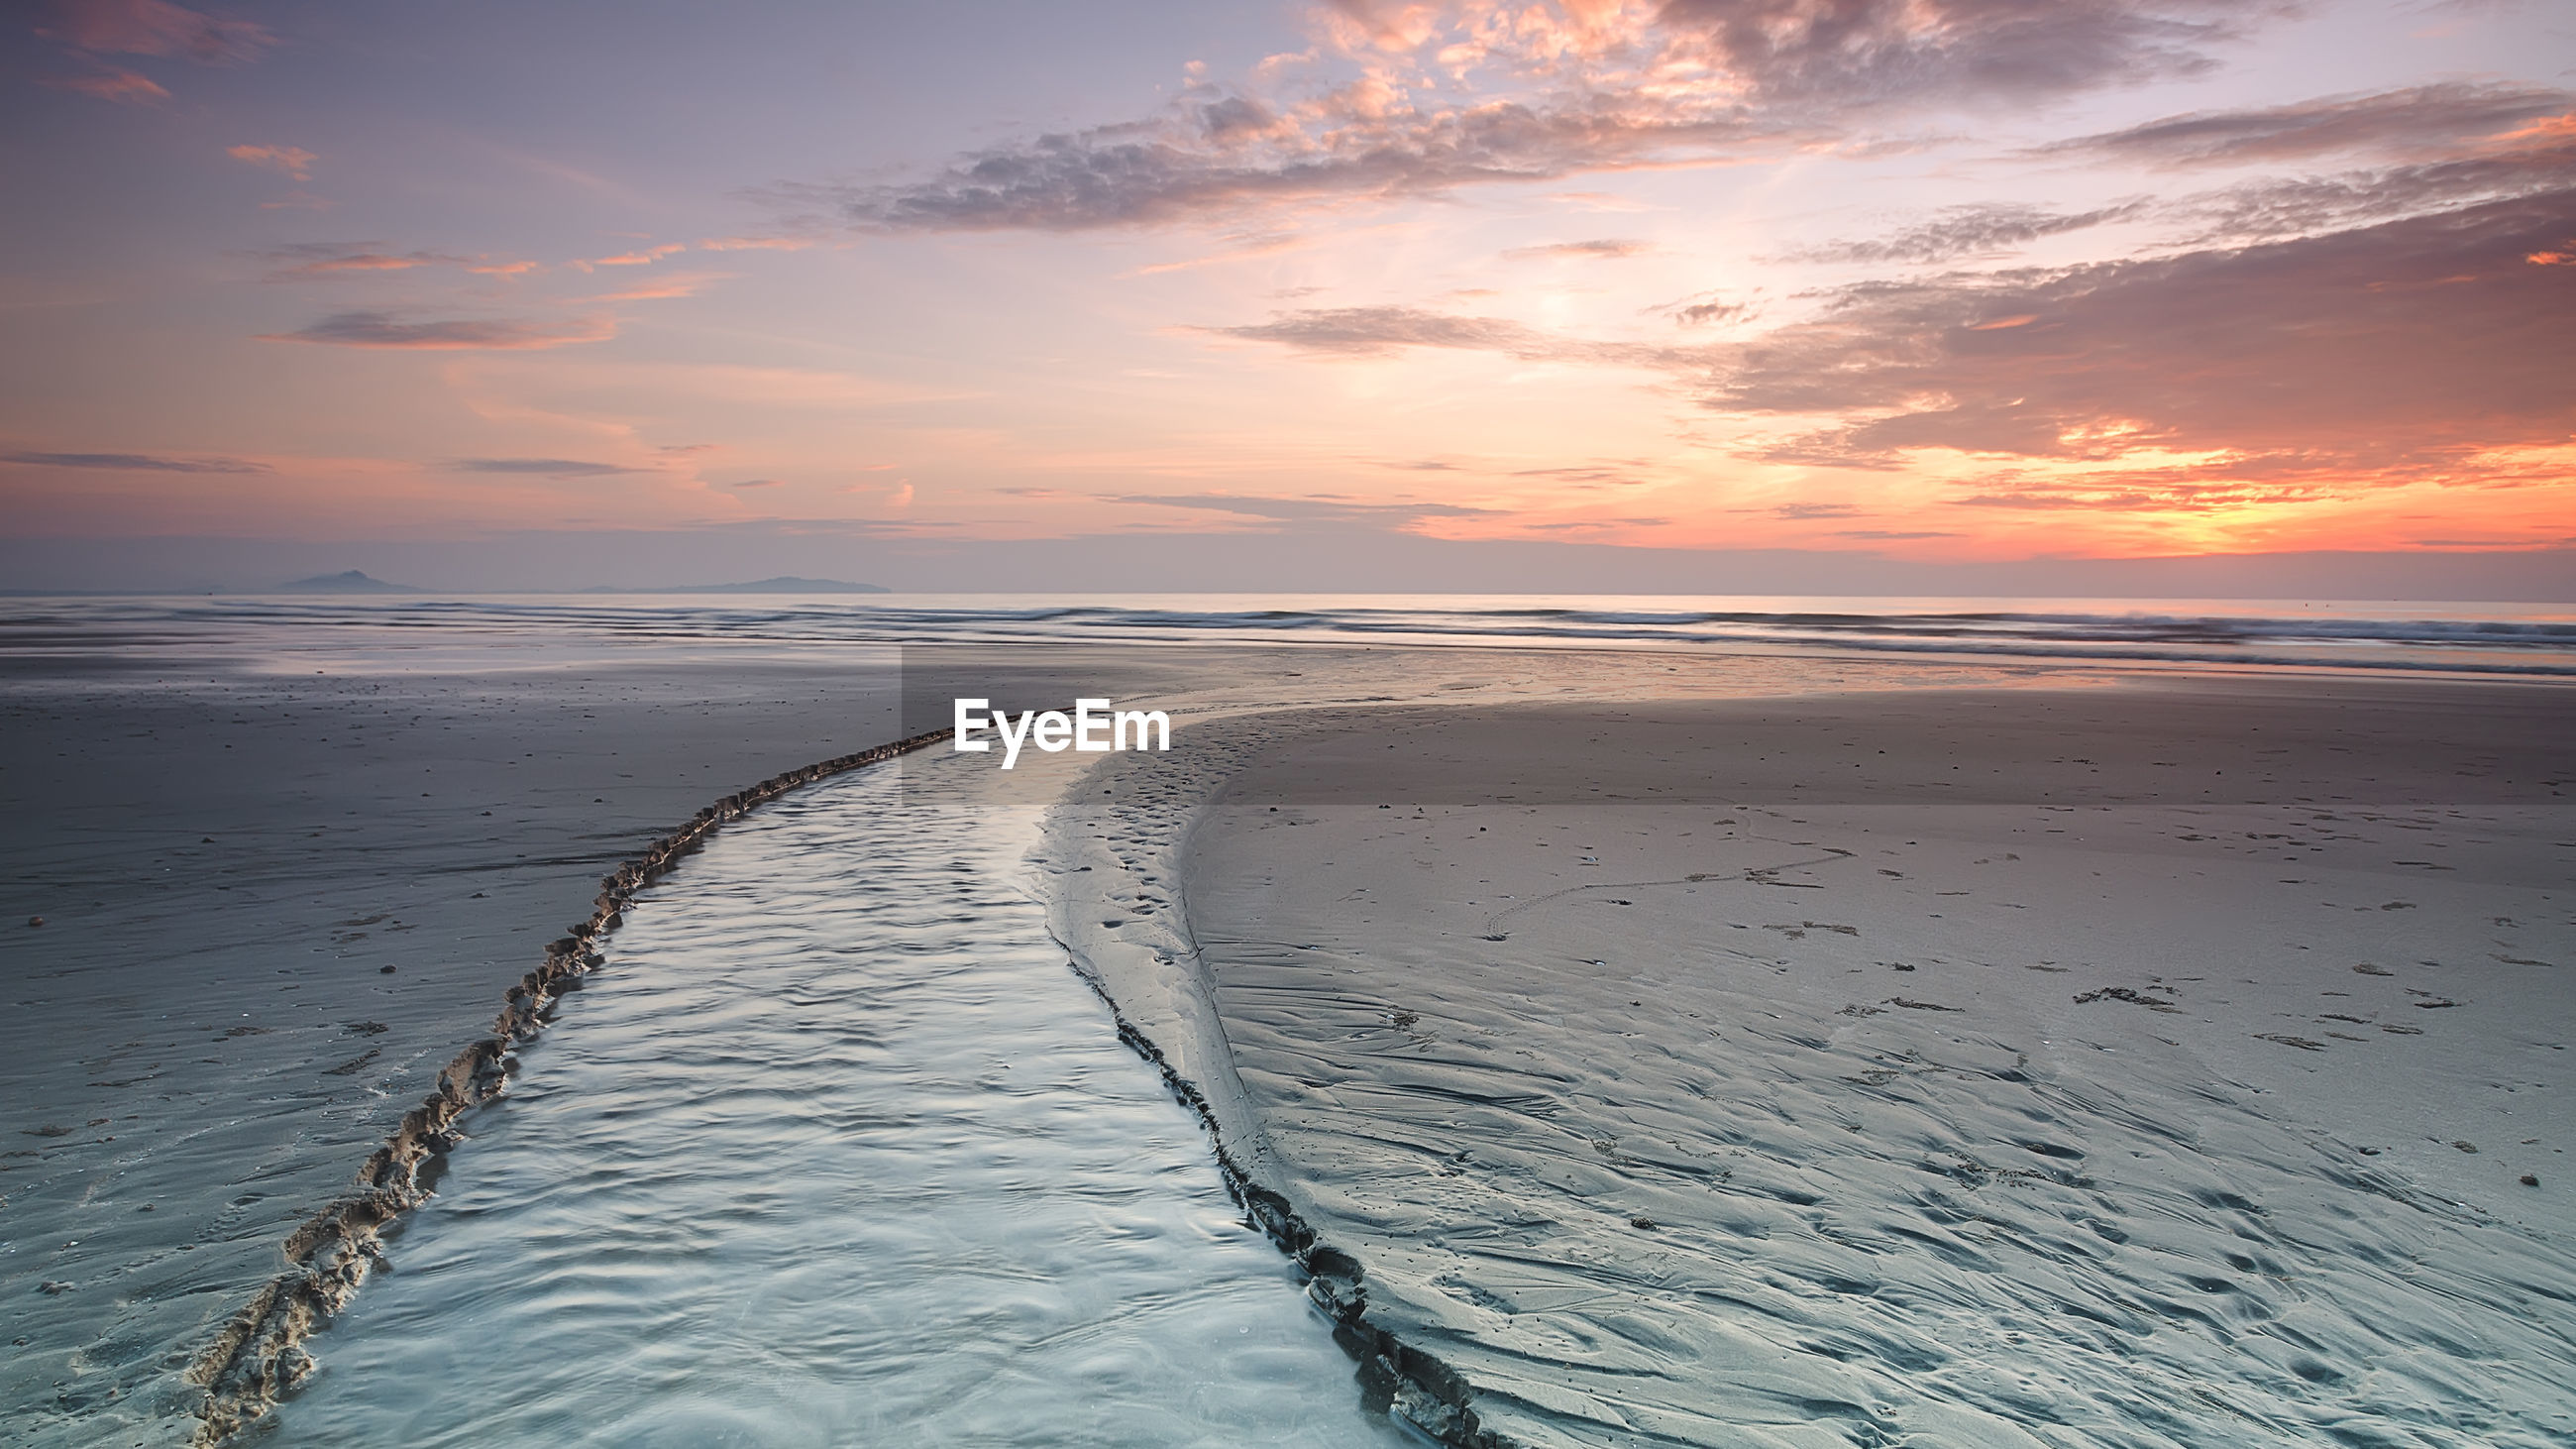 SCENIC VIEW OF BEACH AGAINST SKY AT SUNSET